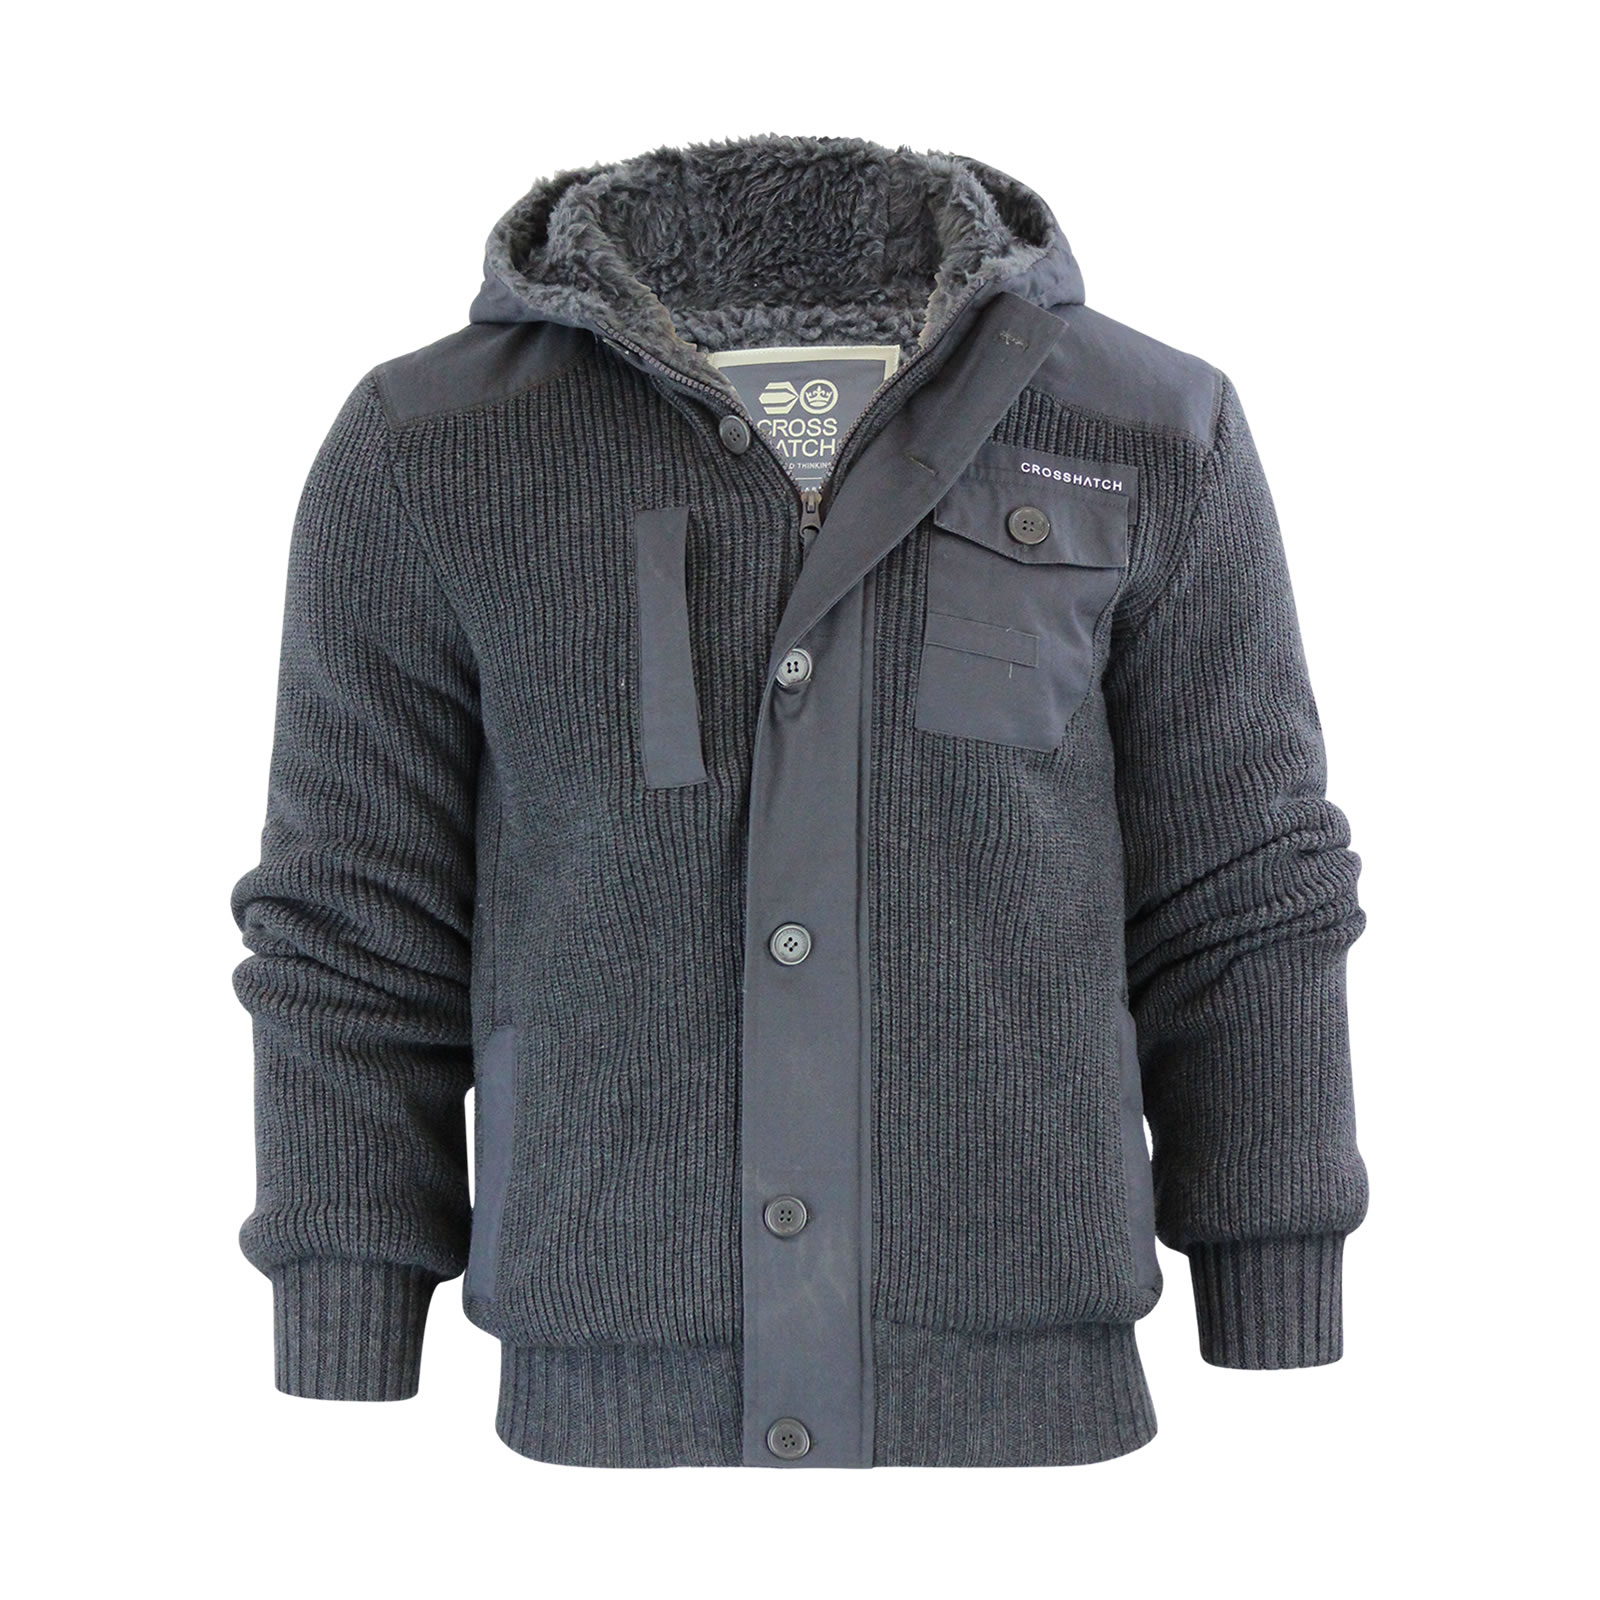 Mens Hooded Cardigan Crosshatch Charnock Heavy Knitted Hoodie ...